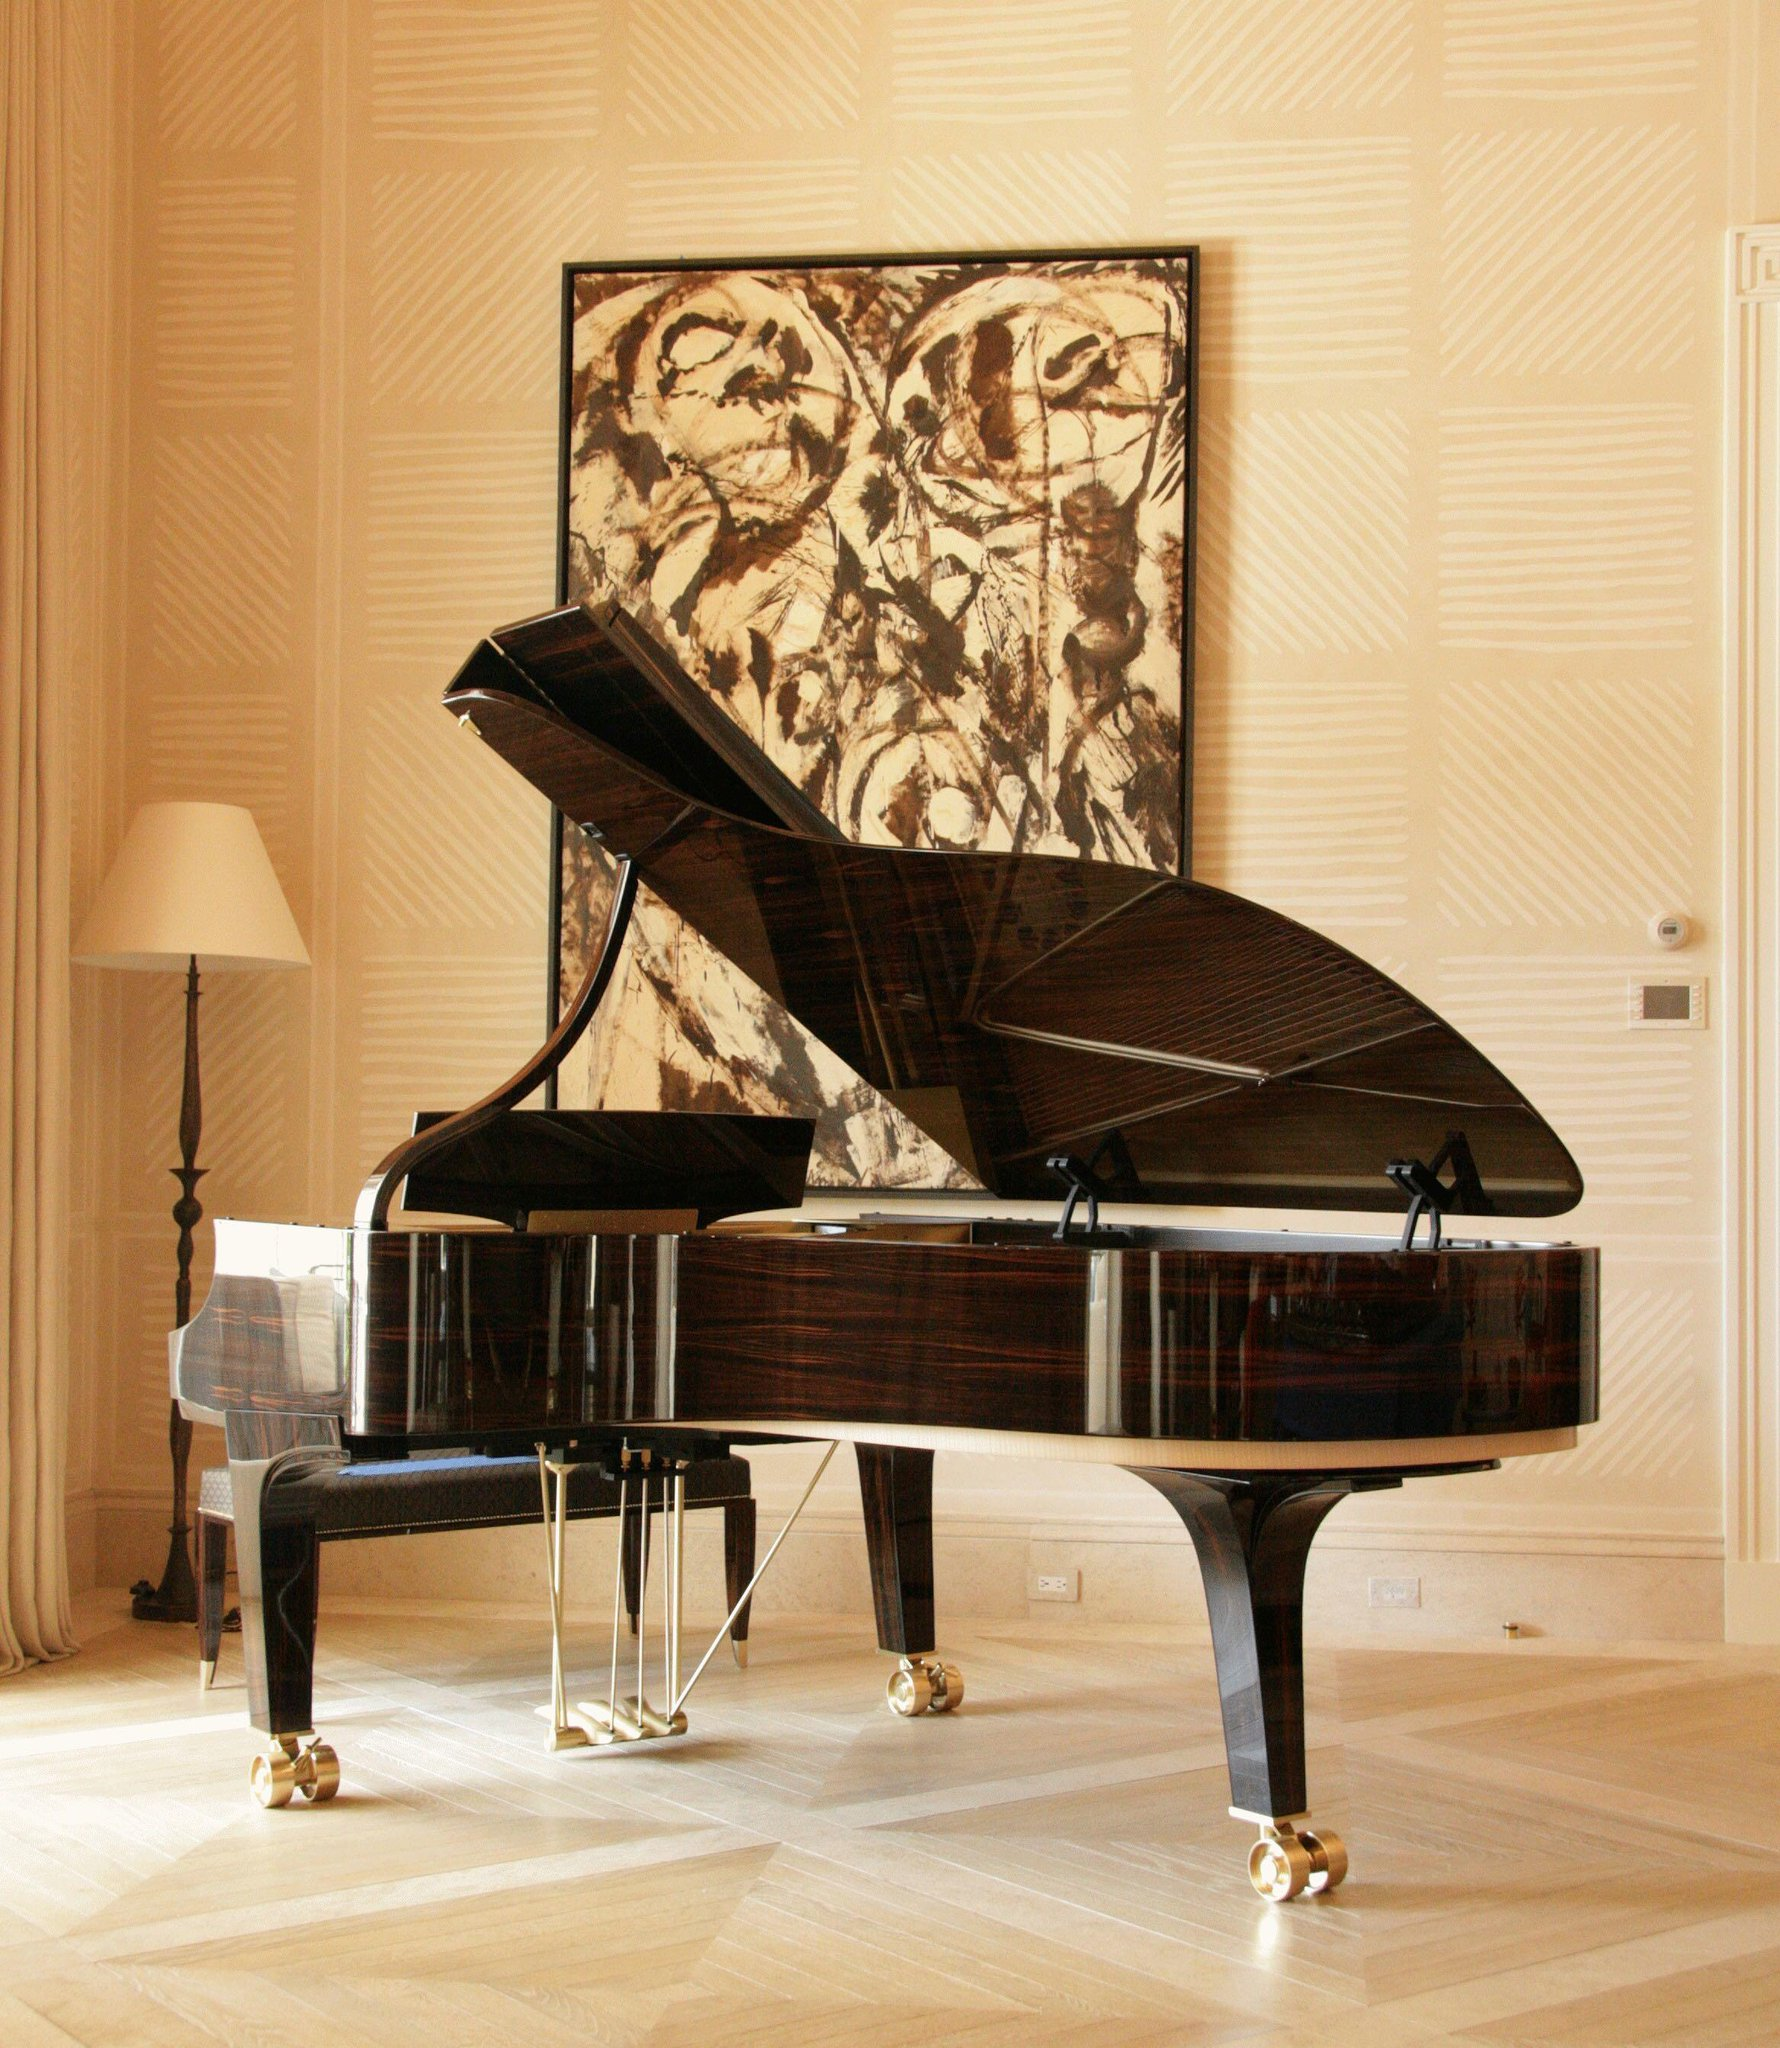 """The Arabesque piano combines the grace of the classical dancer and the intertwining motif witnessed in Moorish design — sound in movement."" — @DakotaJacksonNY on his piano design for Steinway's 160th Anniversary. Discover more Limited Edition Steinways: https://www.steinway.com/pianos/steinway/limited-edition"